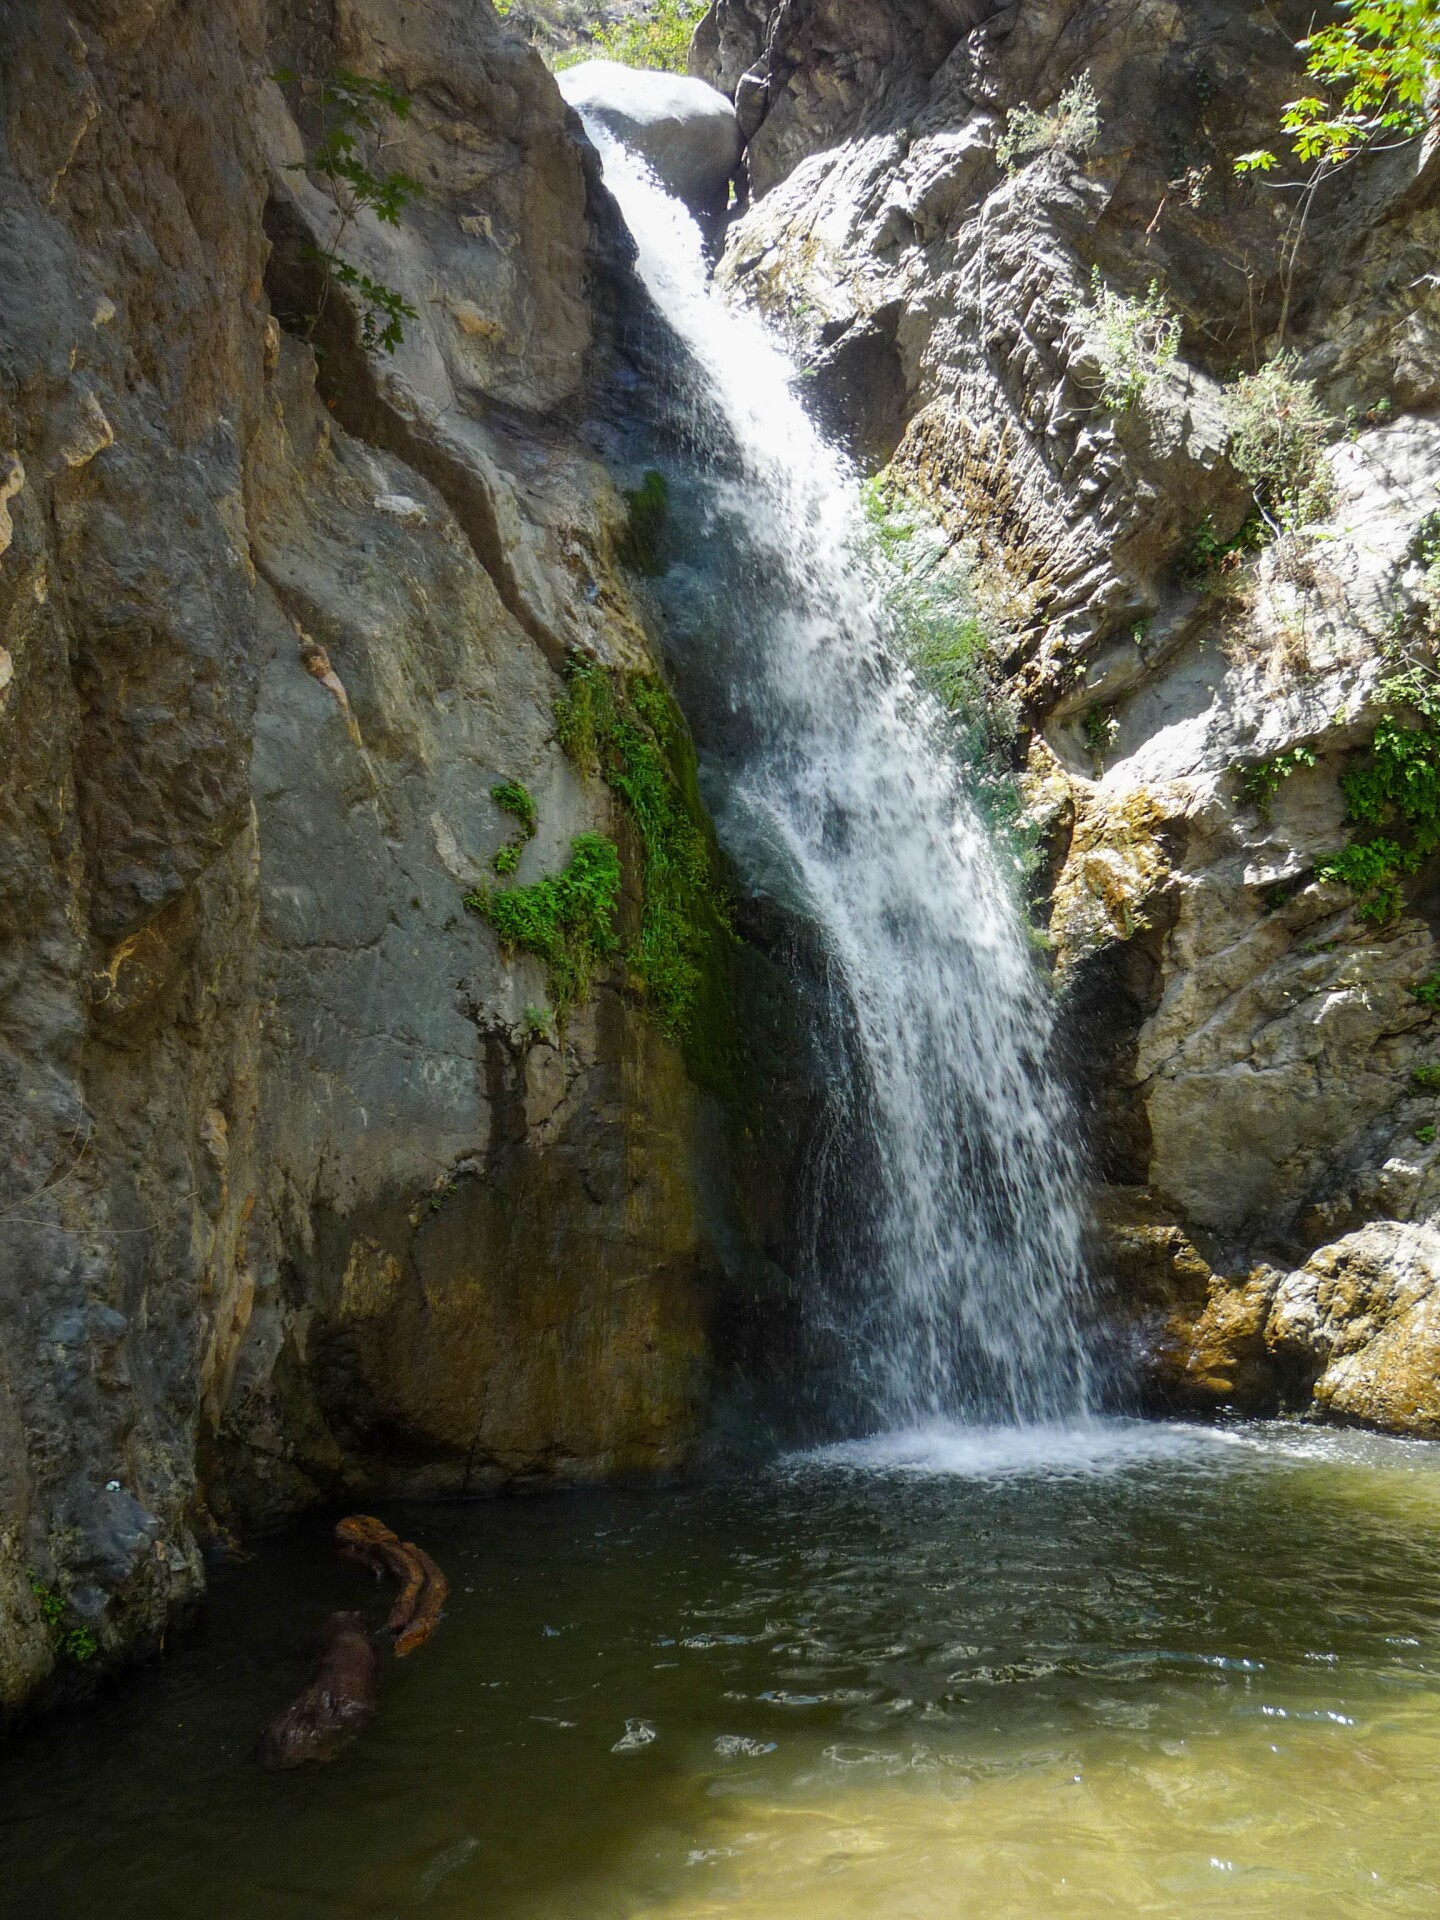 The waterfall at Eaton Canyon empties into a pool of water at the foot of the falls where hikers will frequently swim.